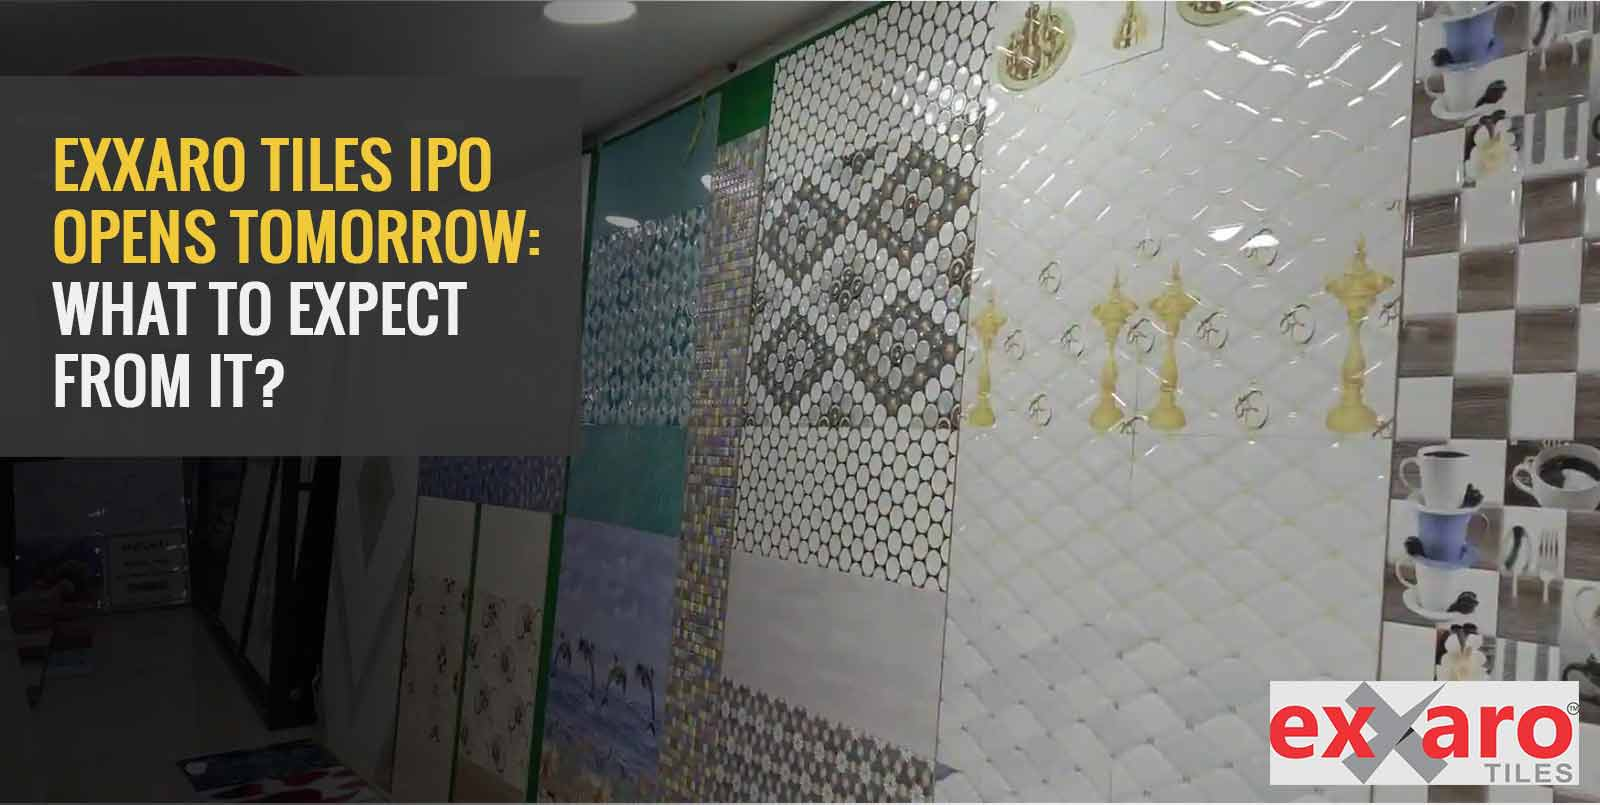 Exxaro Tiles IPO Opens Tomorrow: What to Expect from It?